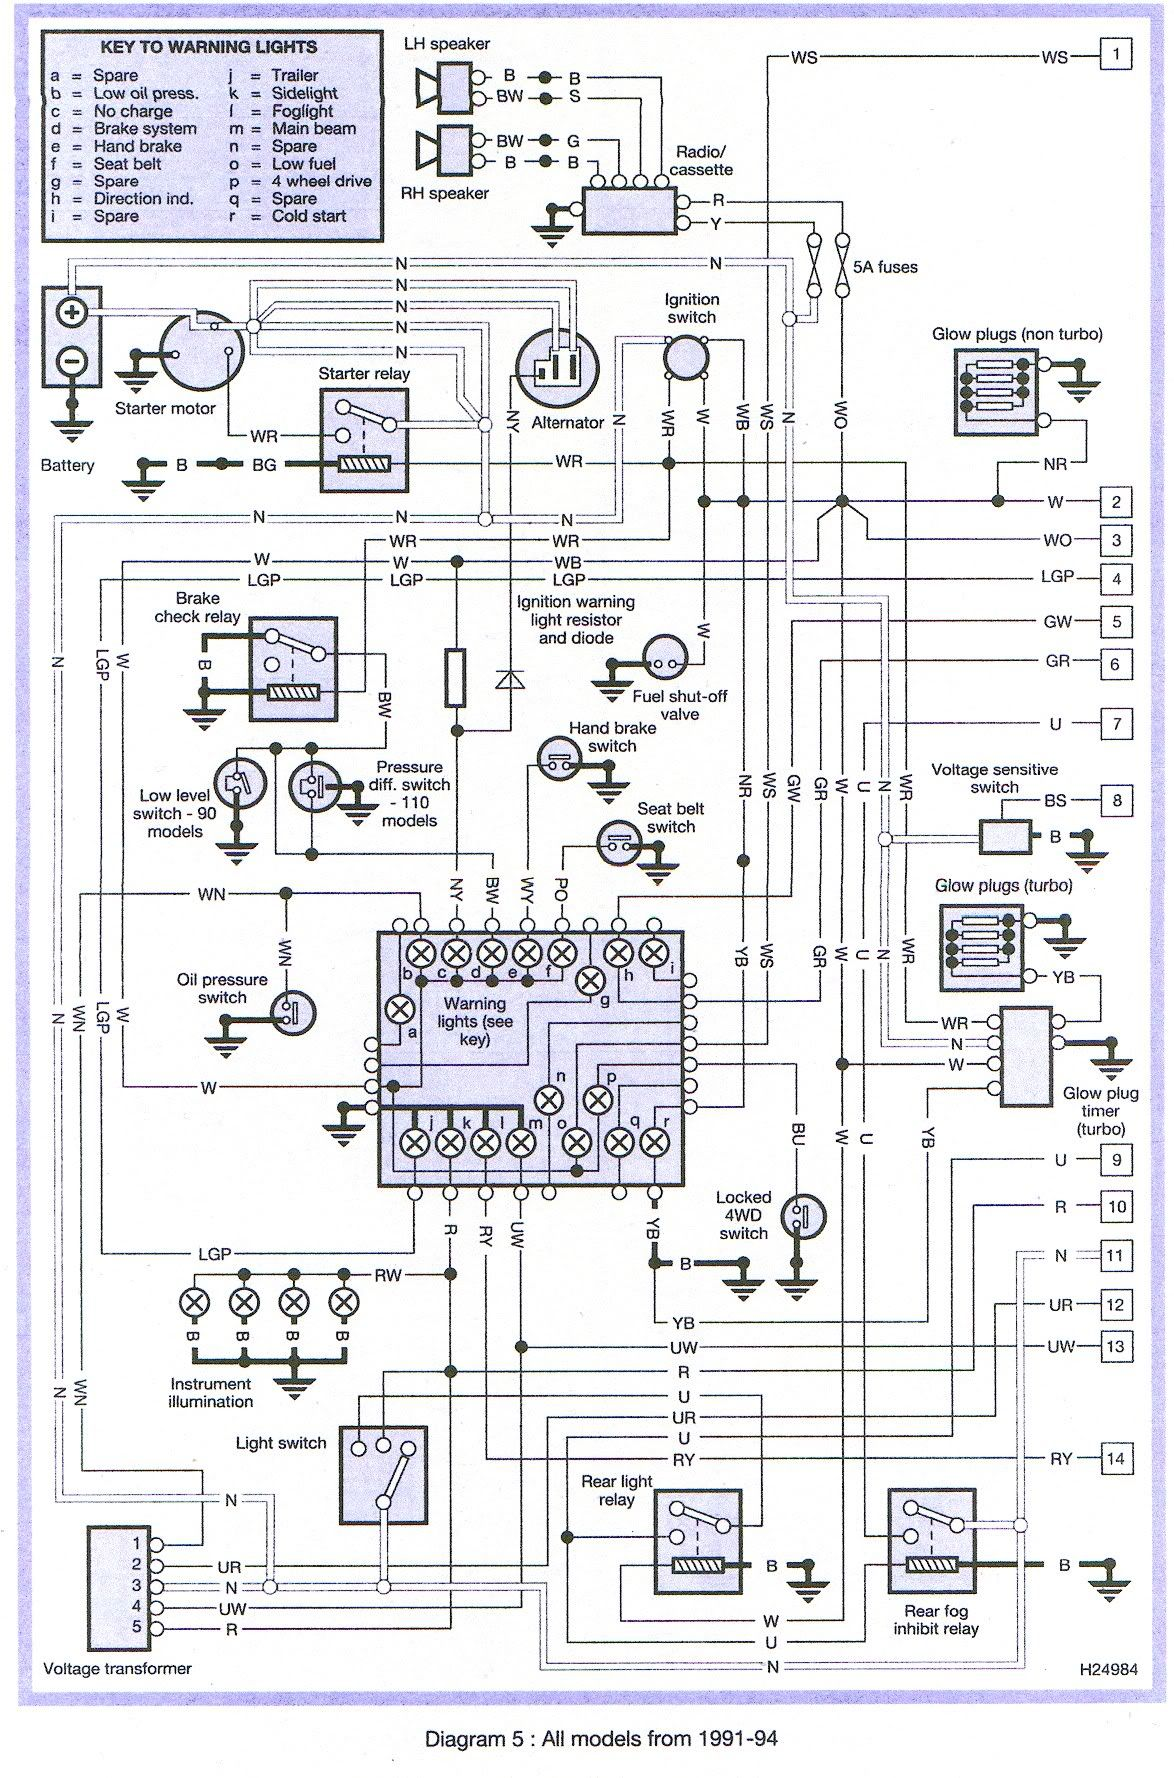 07629544bfff38ad2881b2c21312c6e6 land rover discovery wiring diagram manual repair with engine 2006 range rover sport wiring diagram at fashall.co